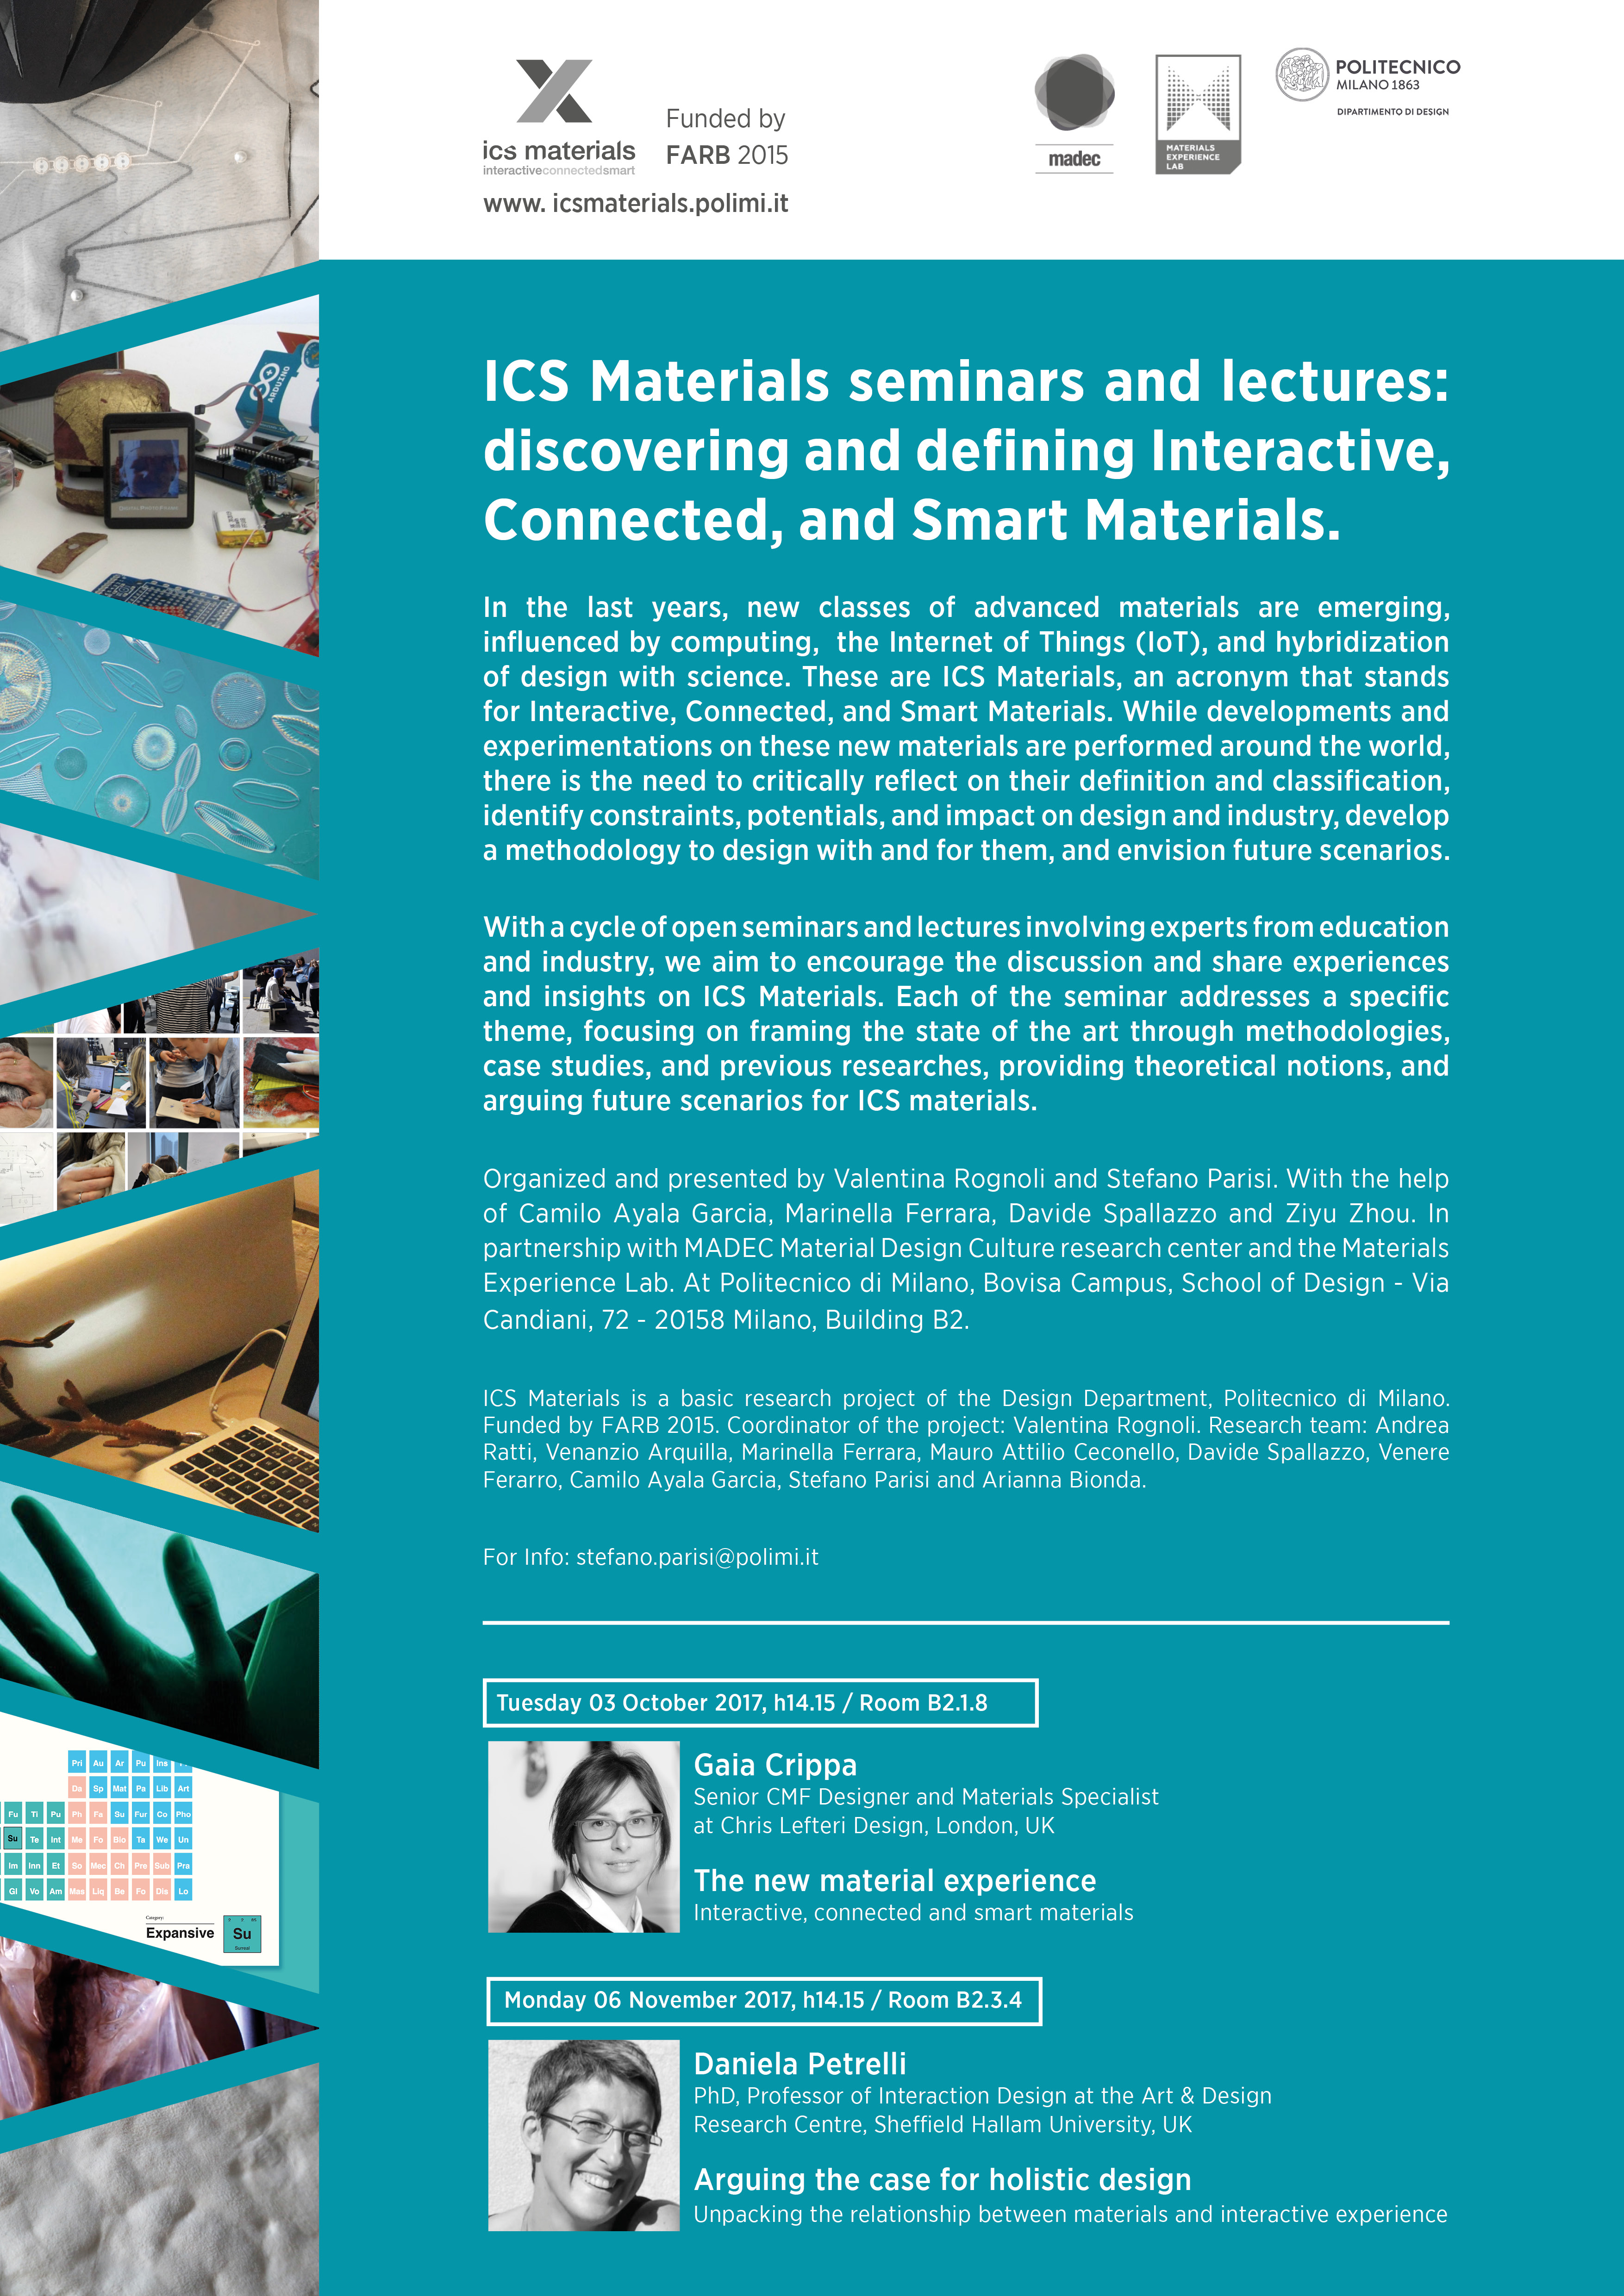 ICS Materials Seminars and Lectures Closing Poster 1.jpg